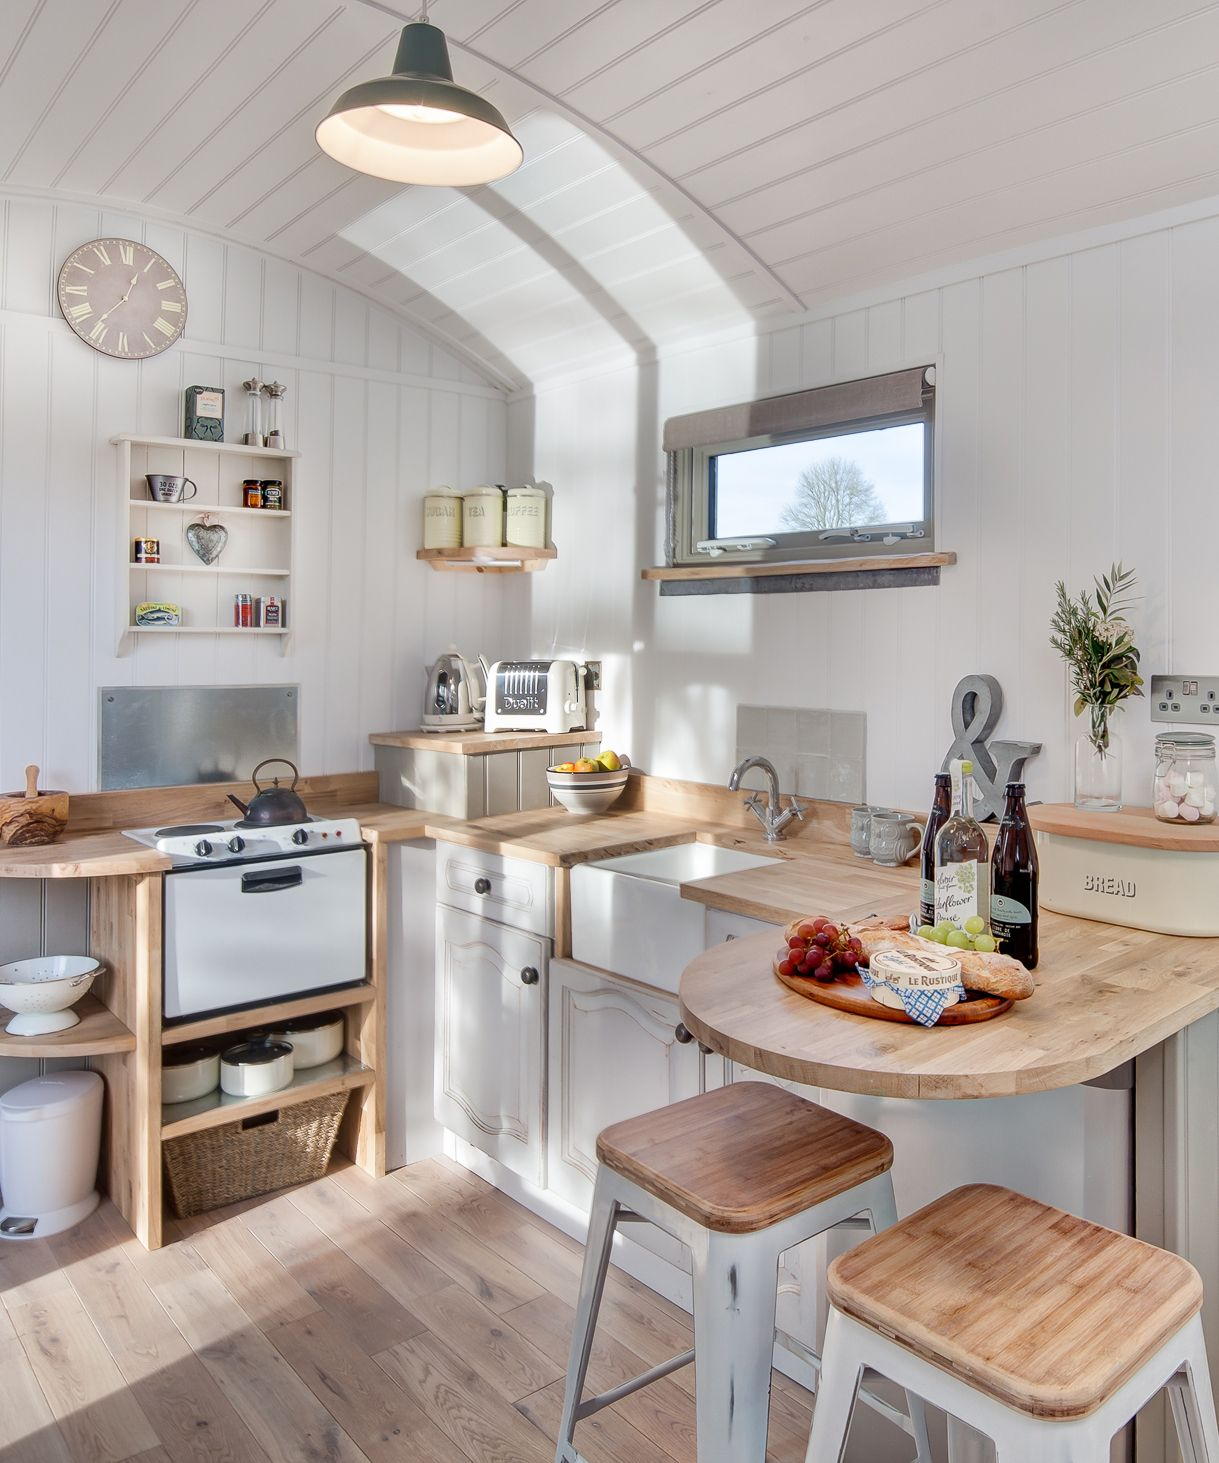 The shepherds hut retreat electric fireplaces refrigerator and oven